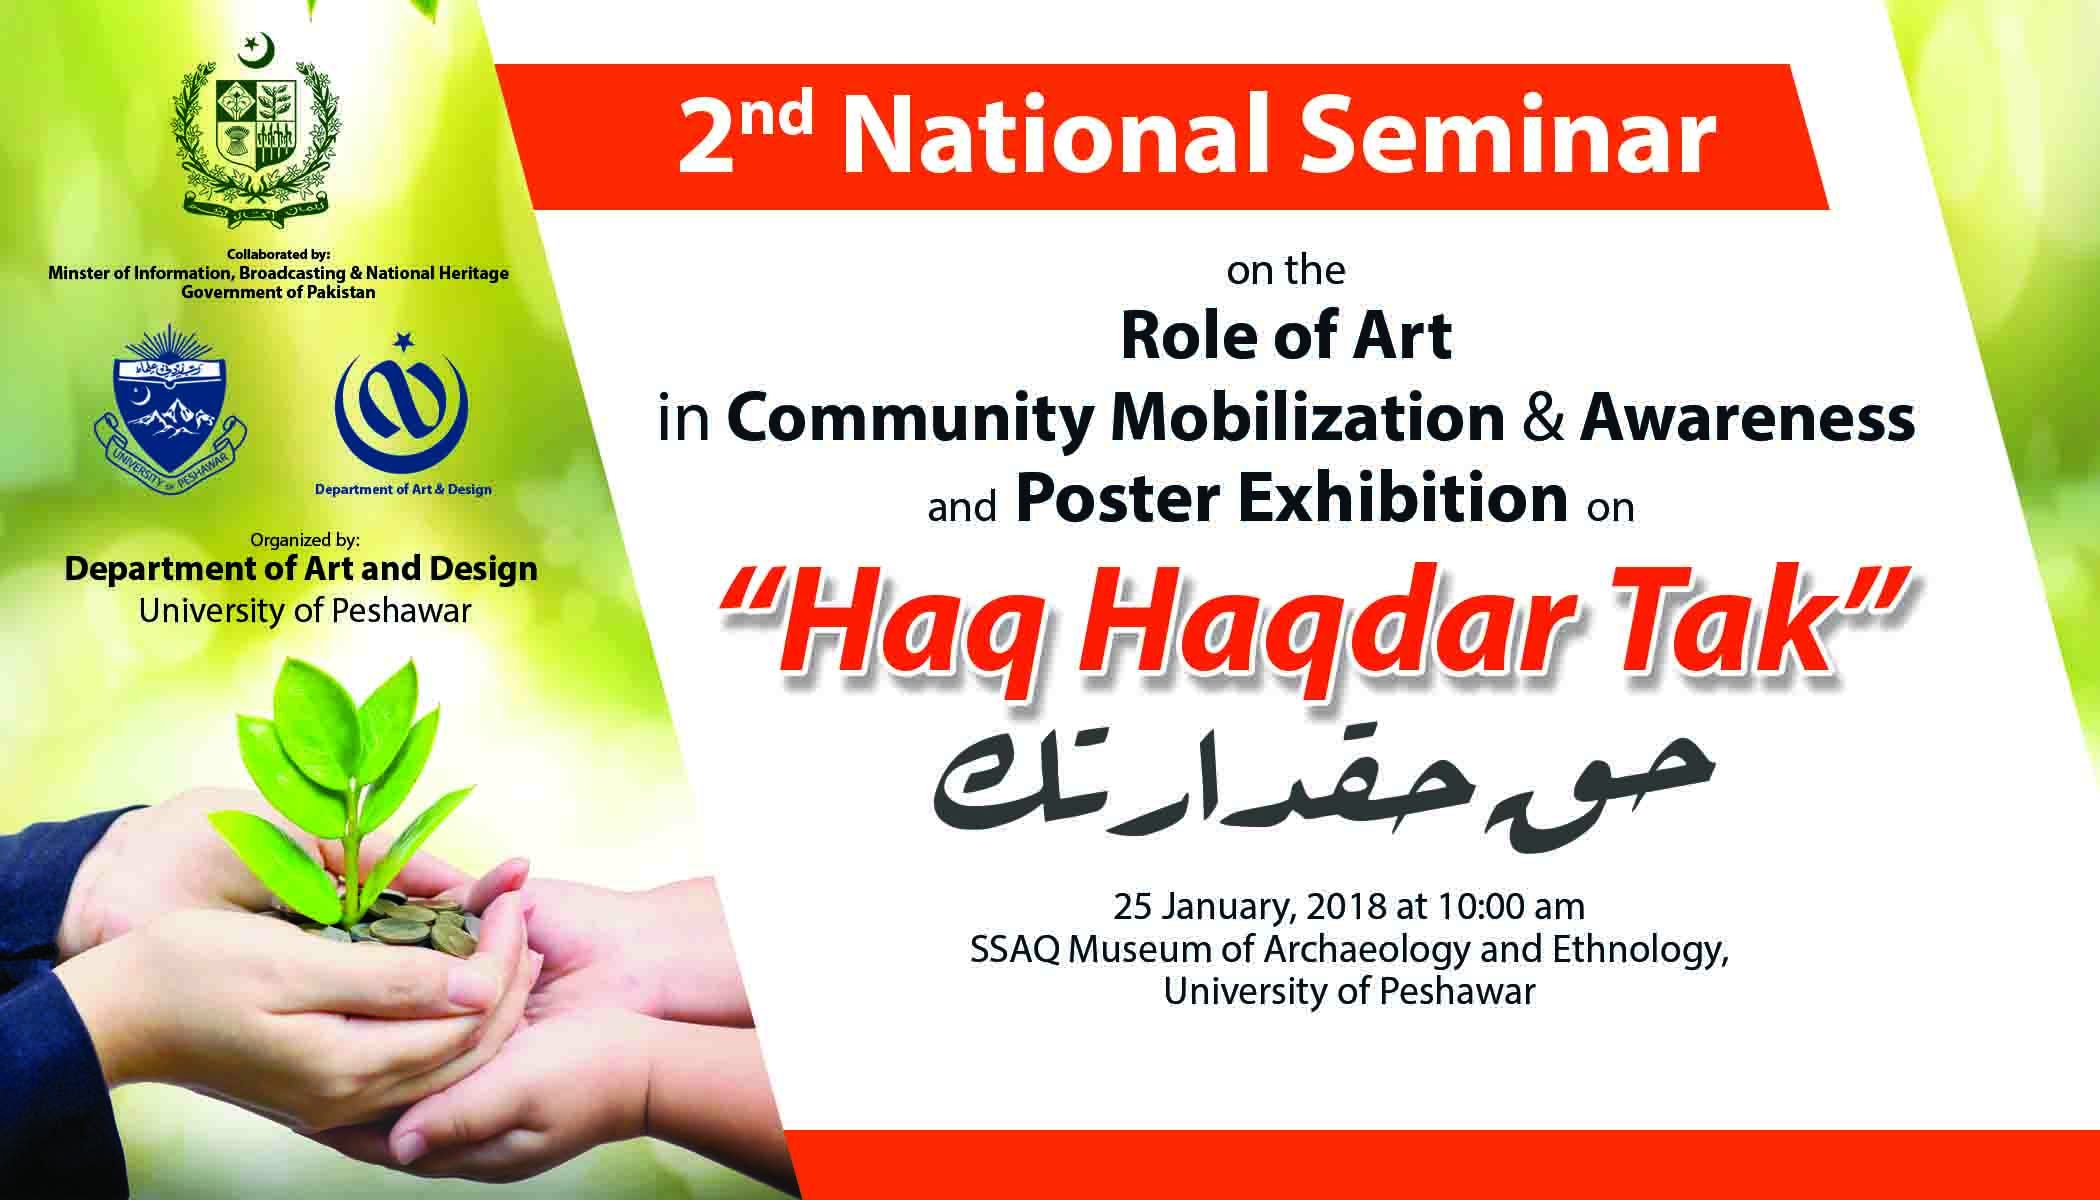 National Seminar on the Role of Art in Community Mobilization & Awareness